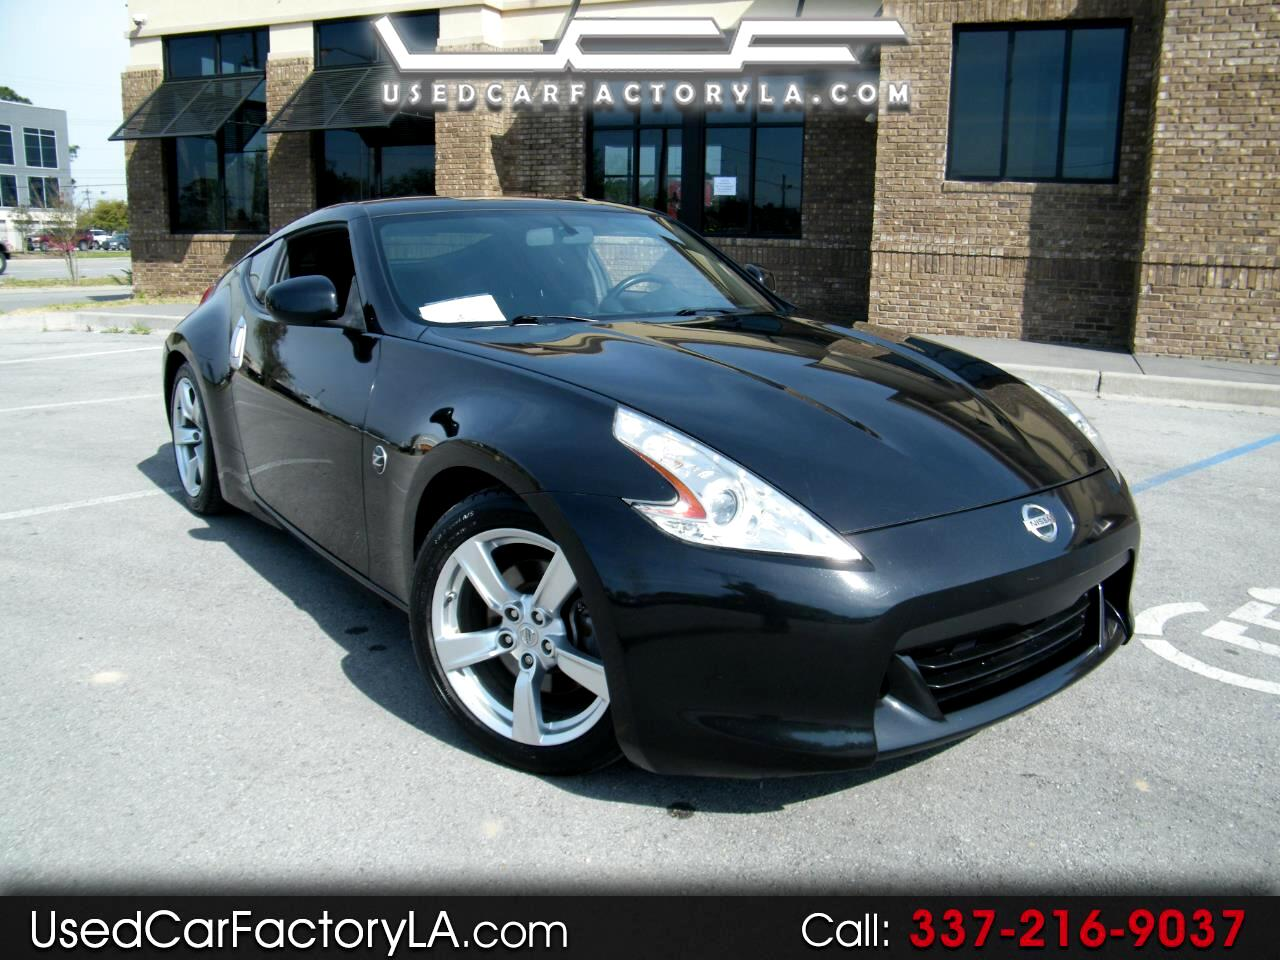 2012 Nissan Z 370Z Touring Coupe